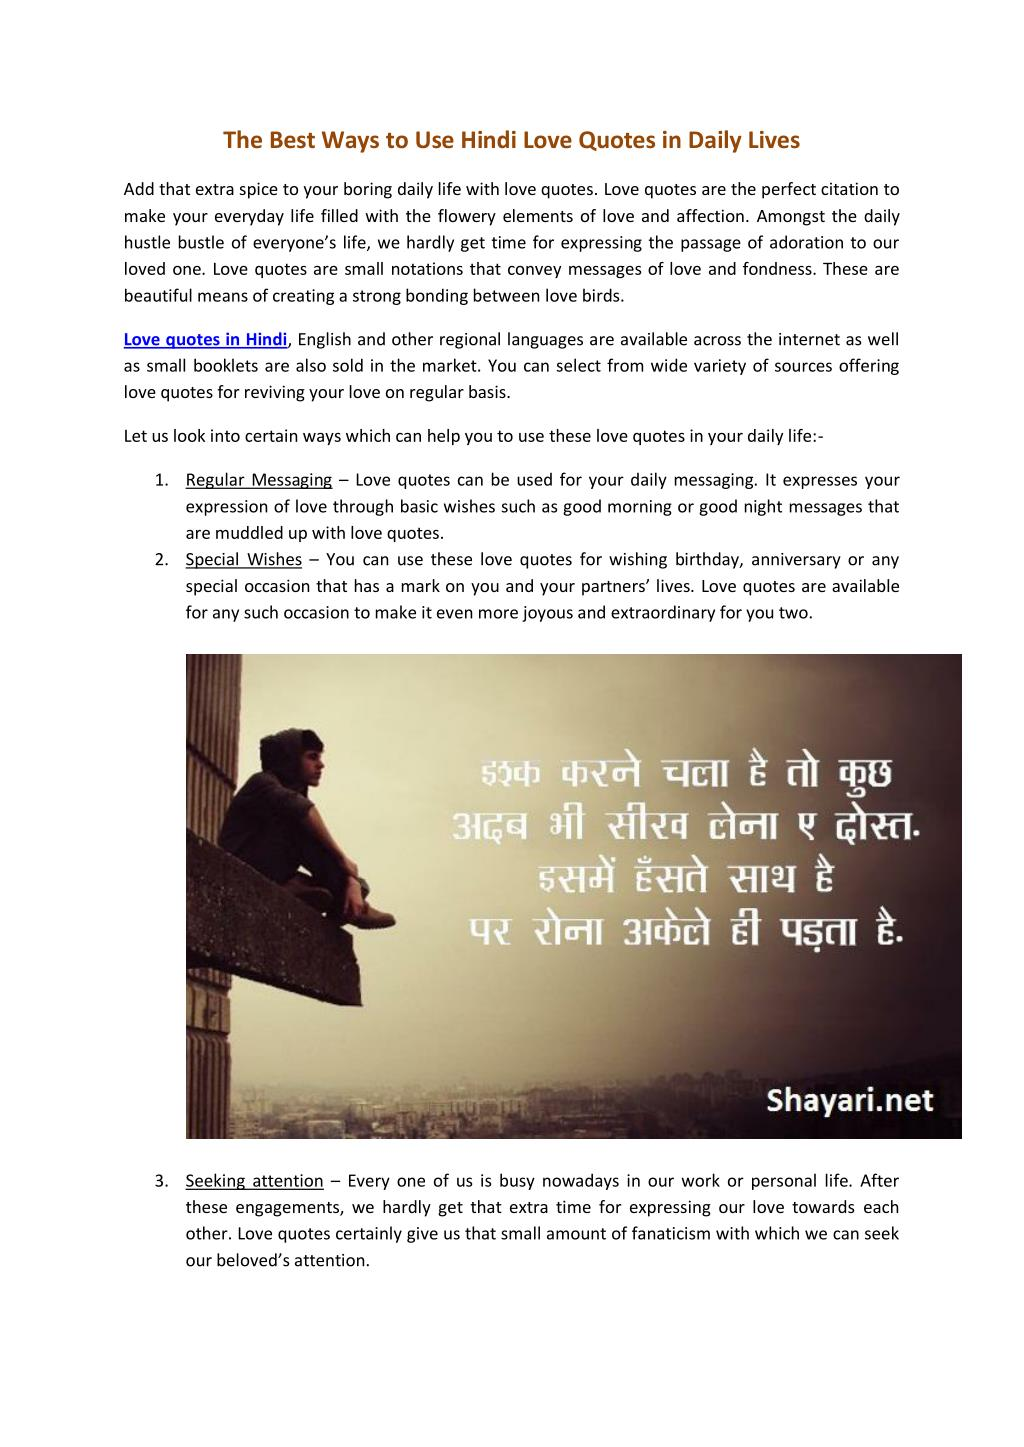 Ppt The Best Ways To Use Hindi Love Quotes In Daily Lives